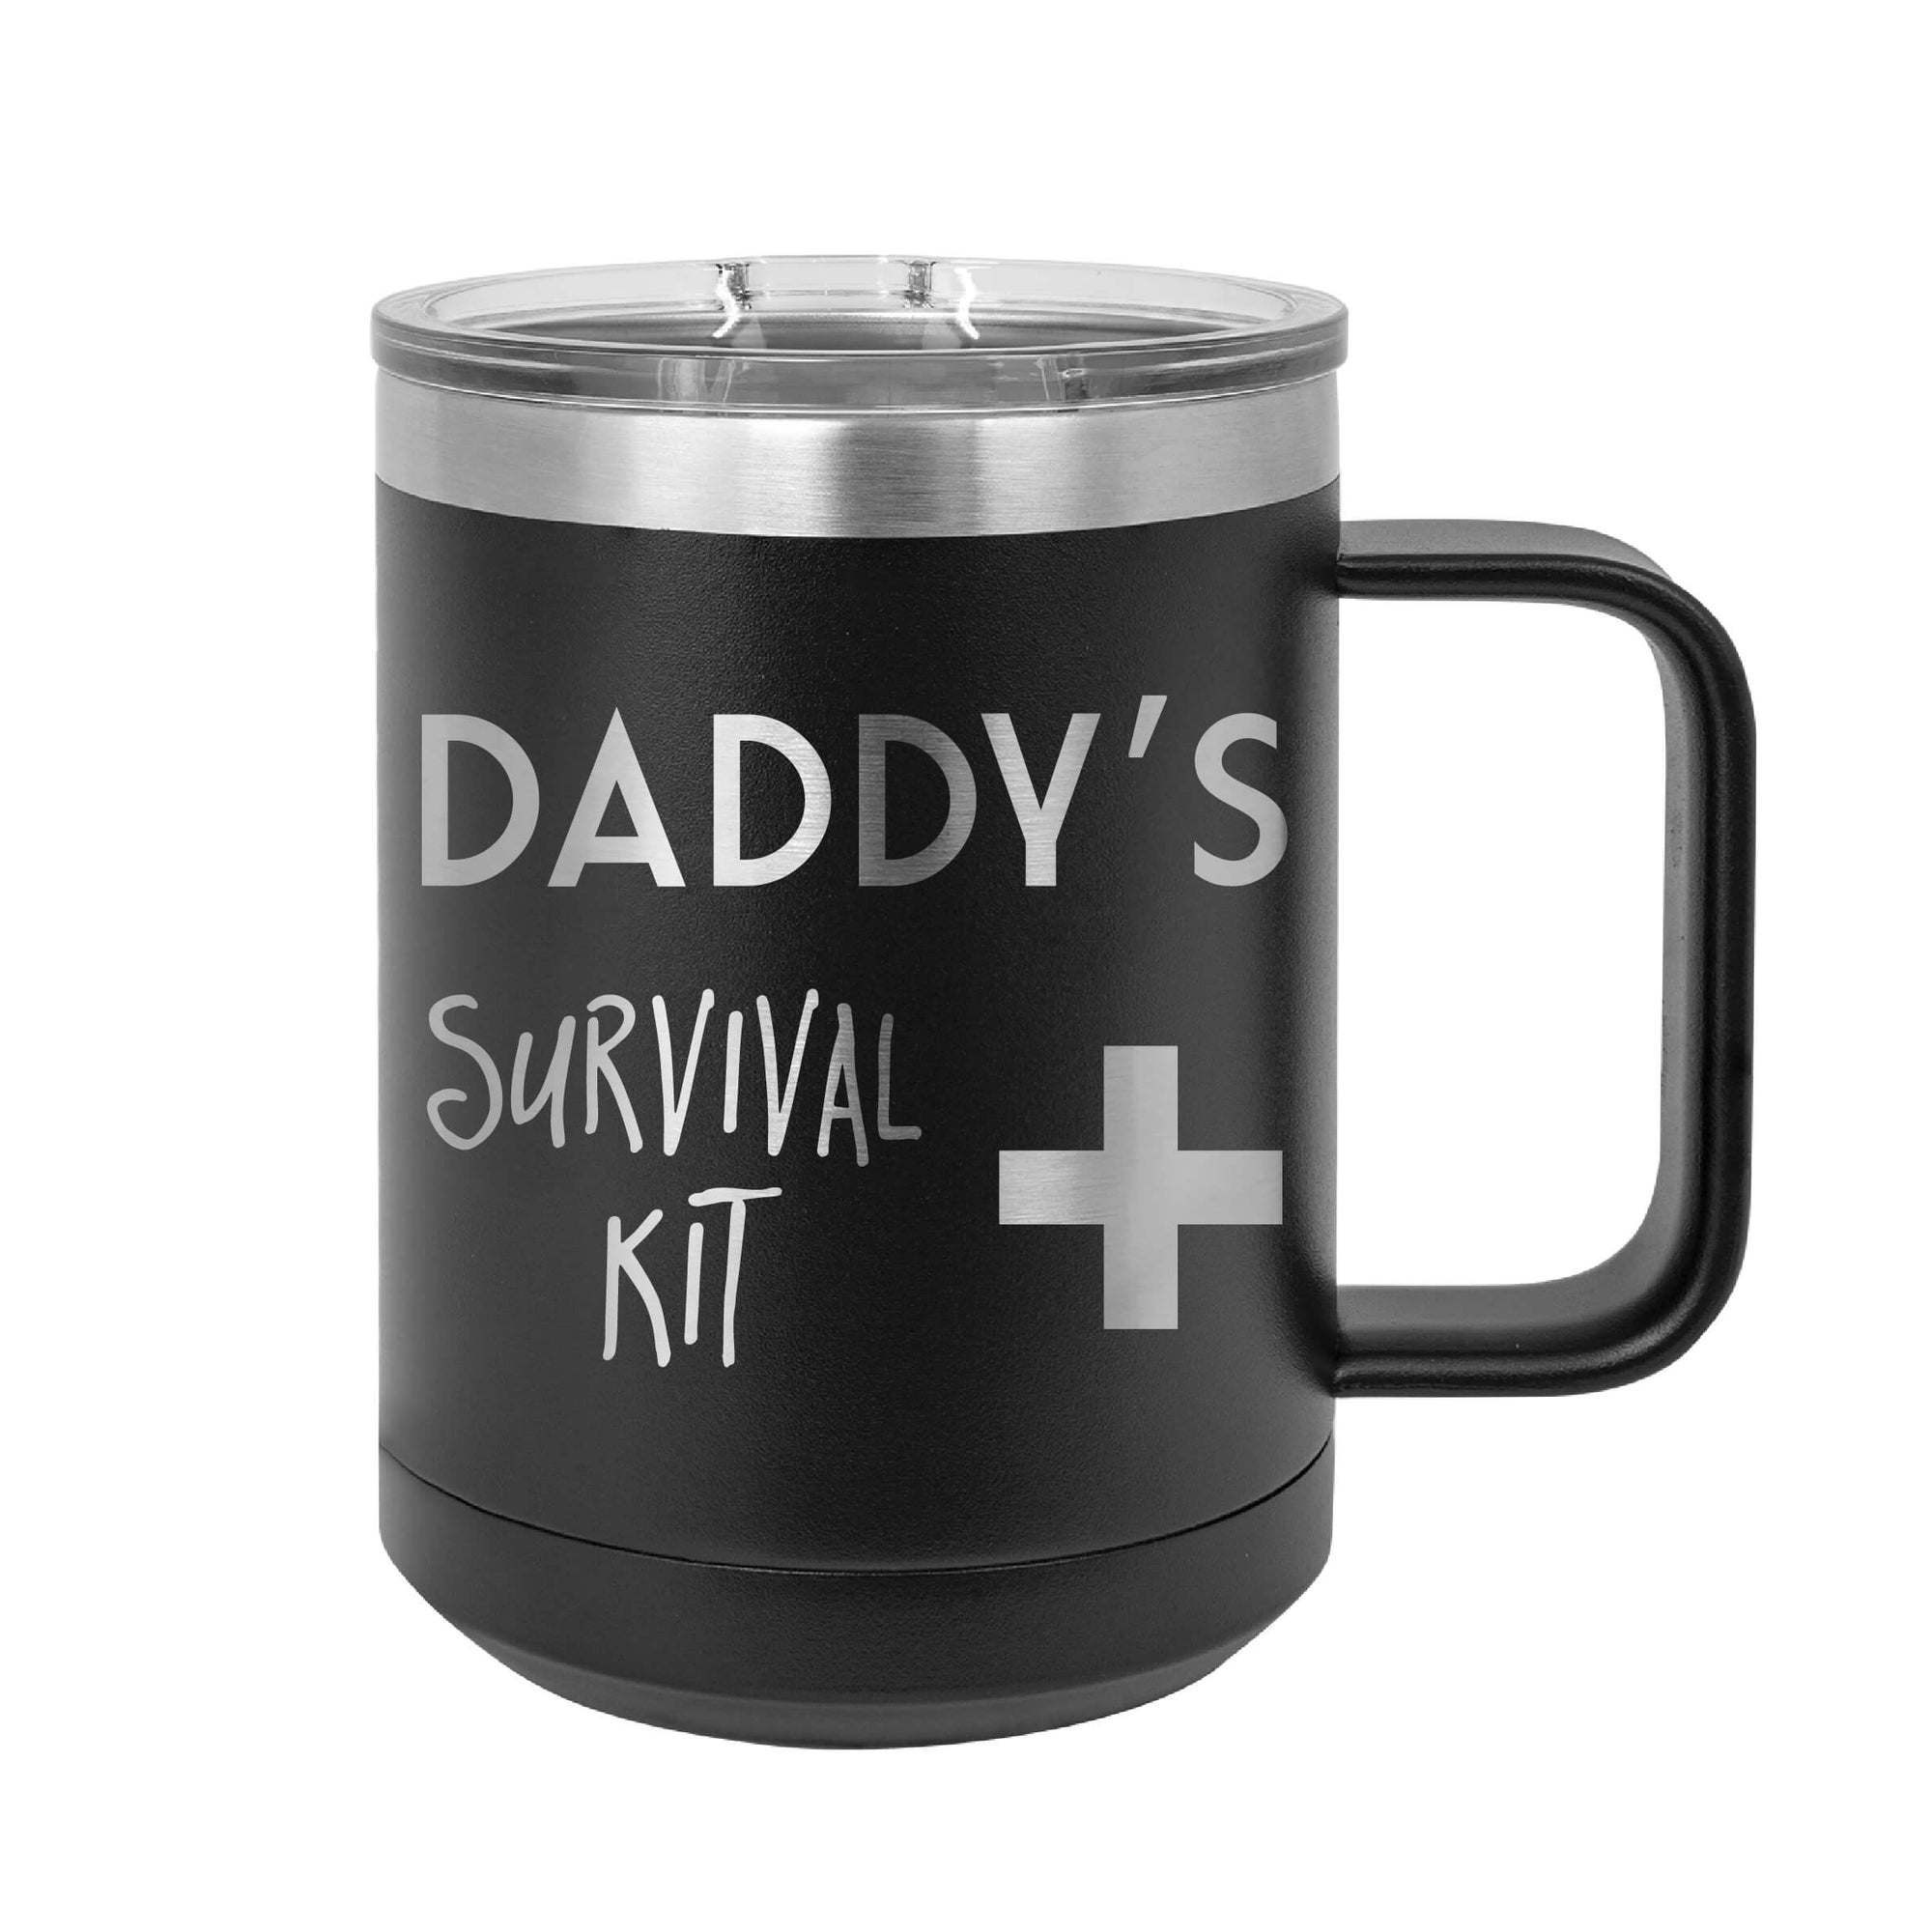 Daddy's Survival Kit Insulated Mug Tumbler